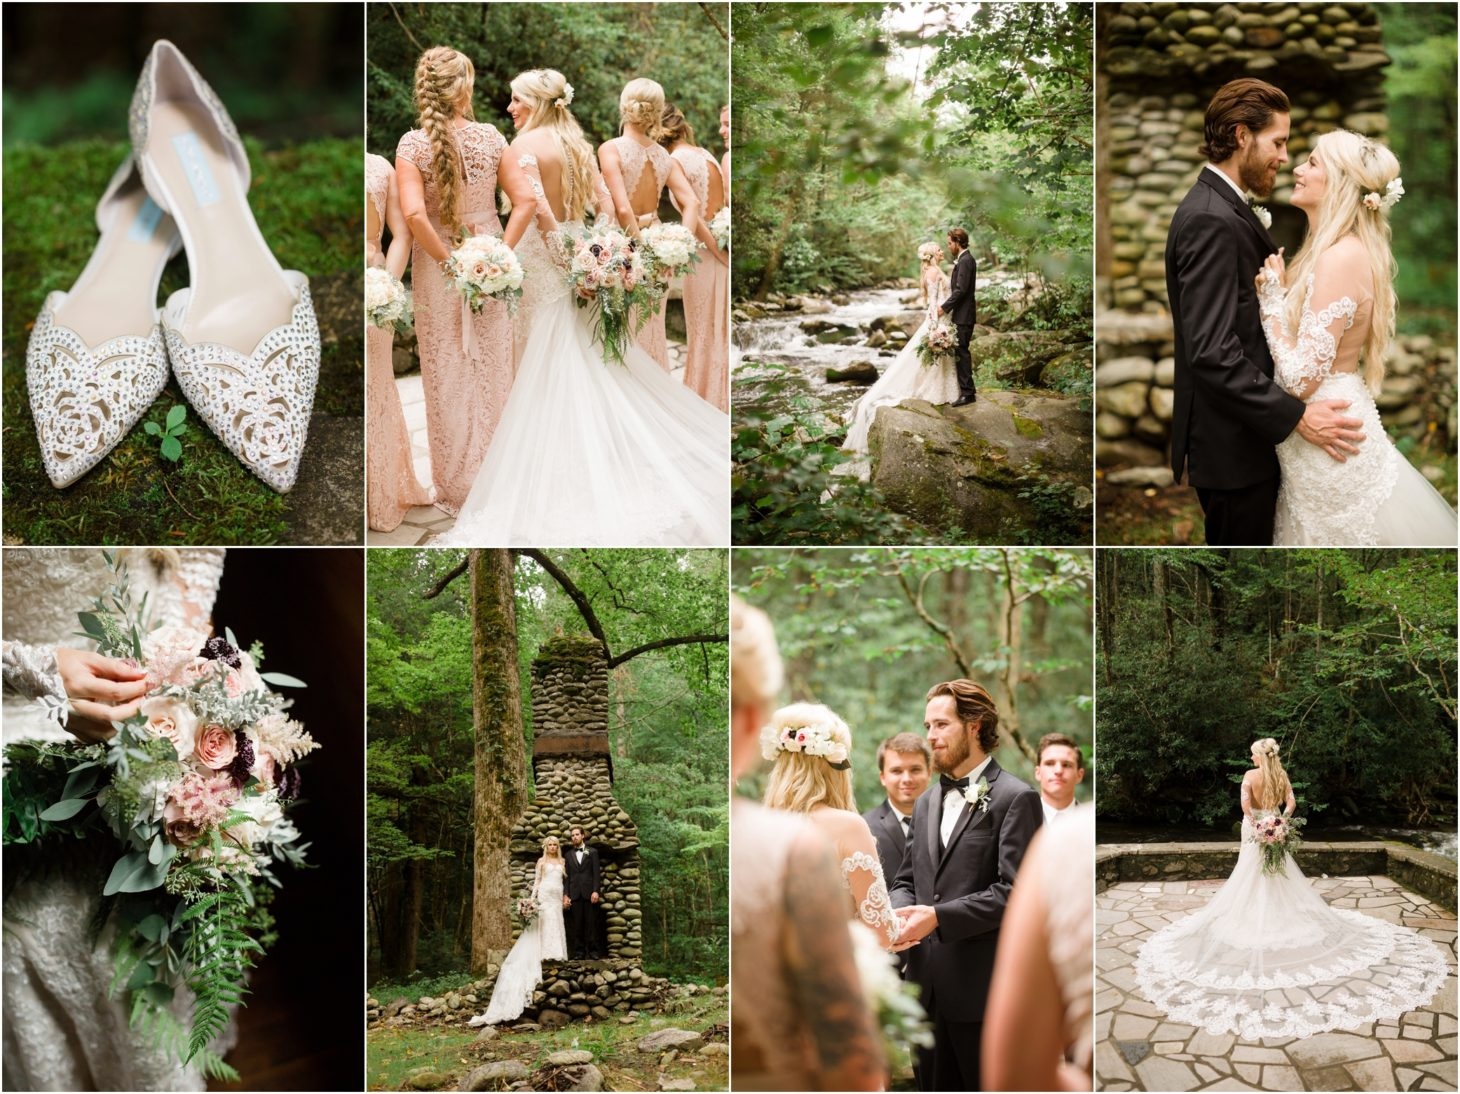 weddings great smoky mountains national park